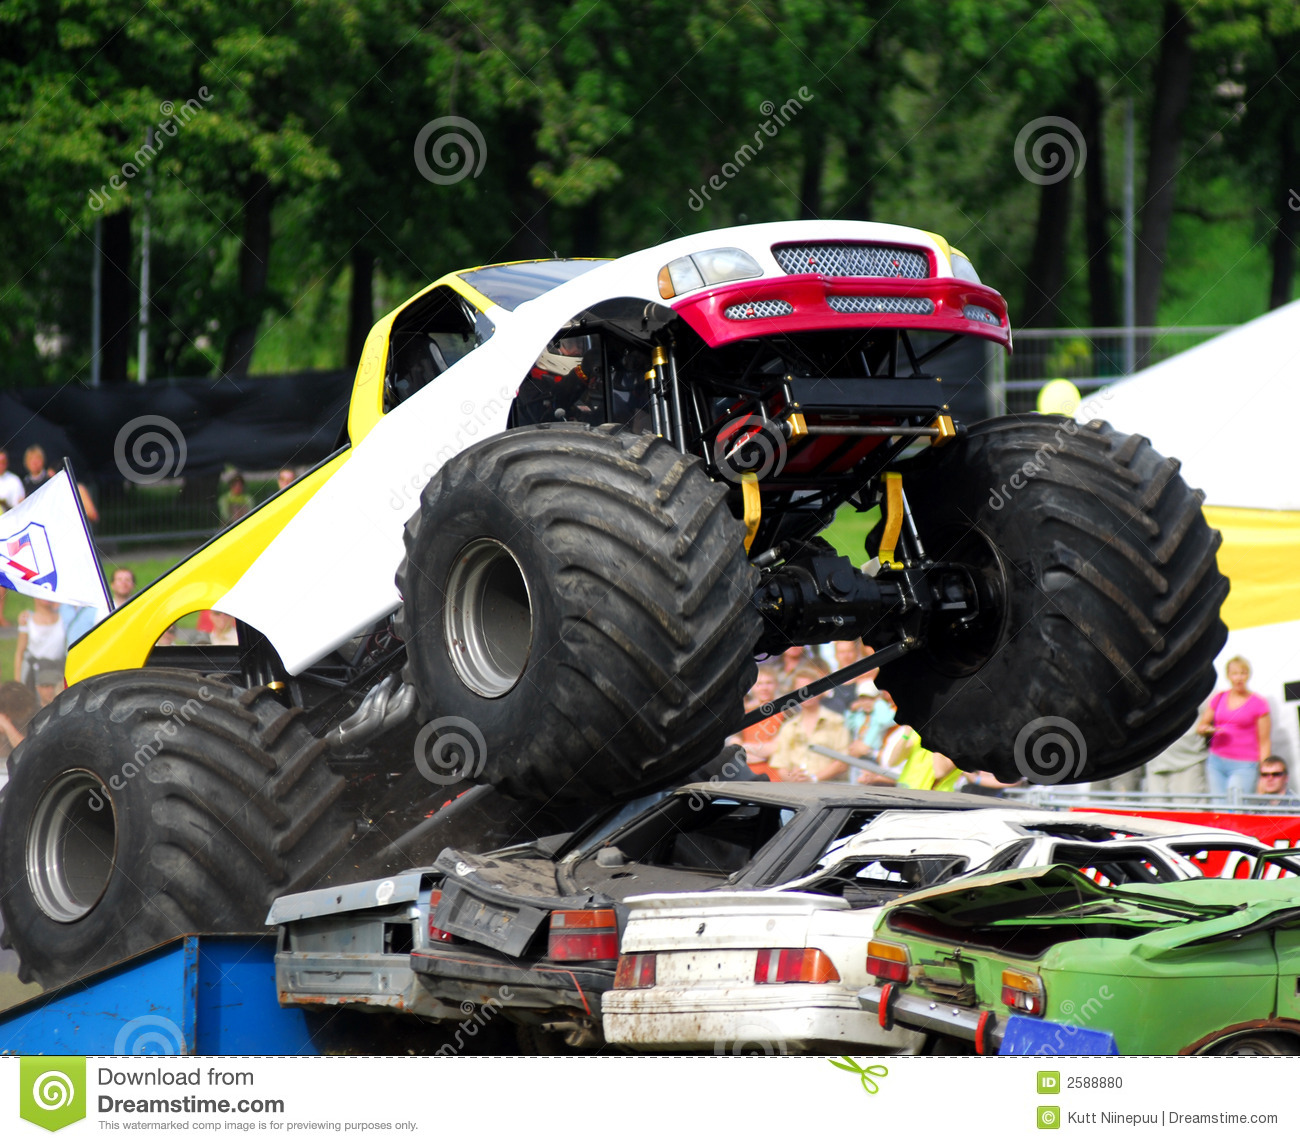 Monster truck rally, where an oversized truck jumps over wrecked cars.